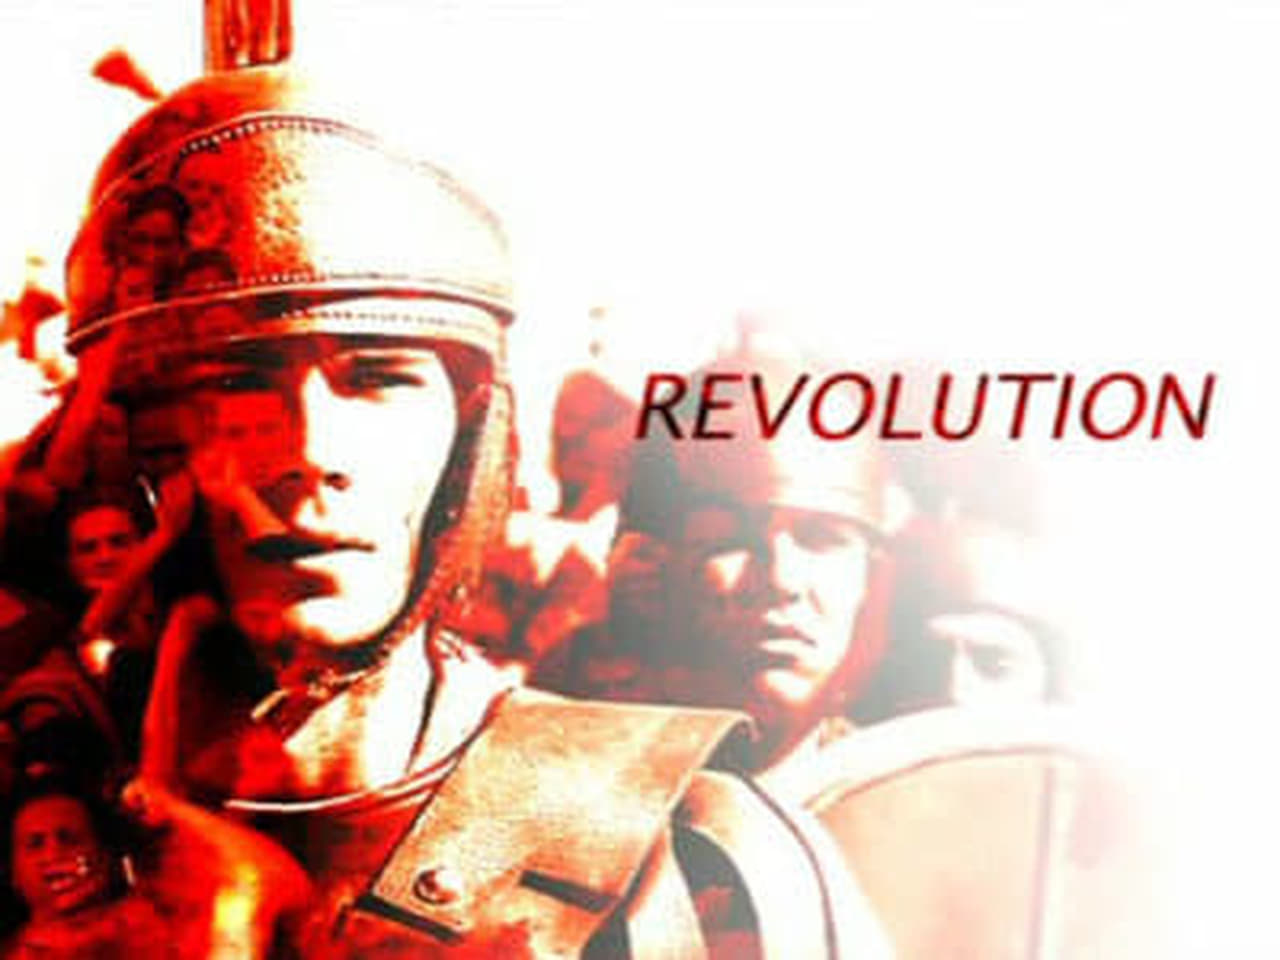 Ancient Rome The Rise and Fall of an Empire Episode: Revolution